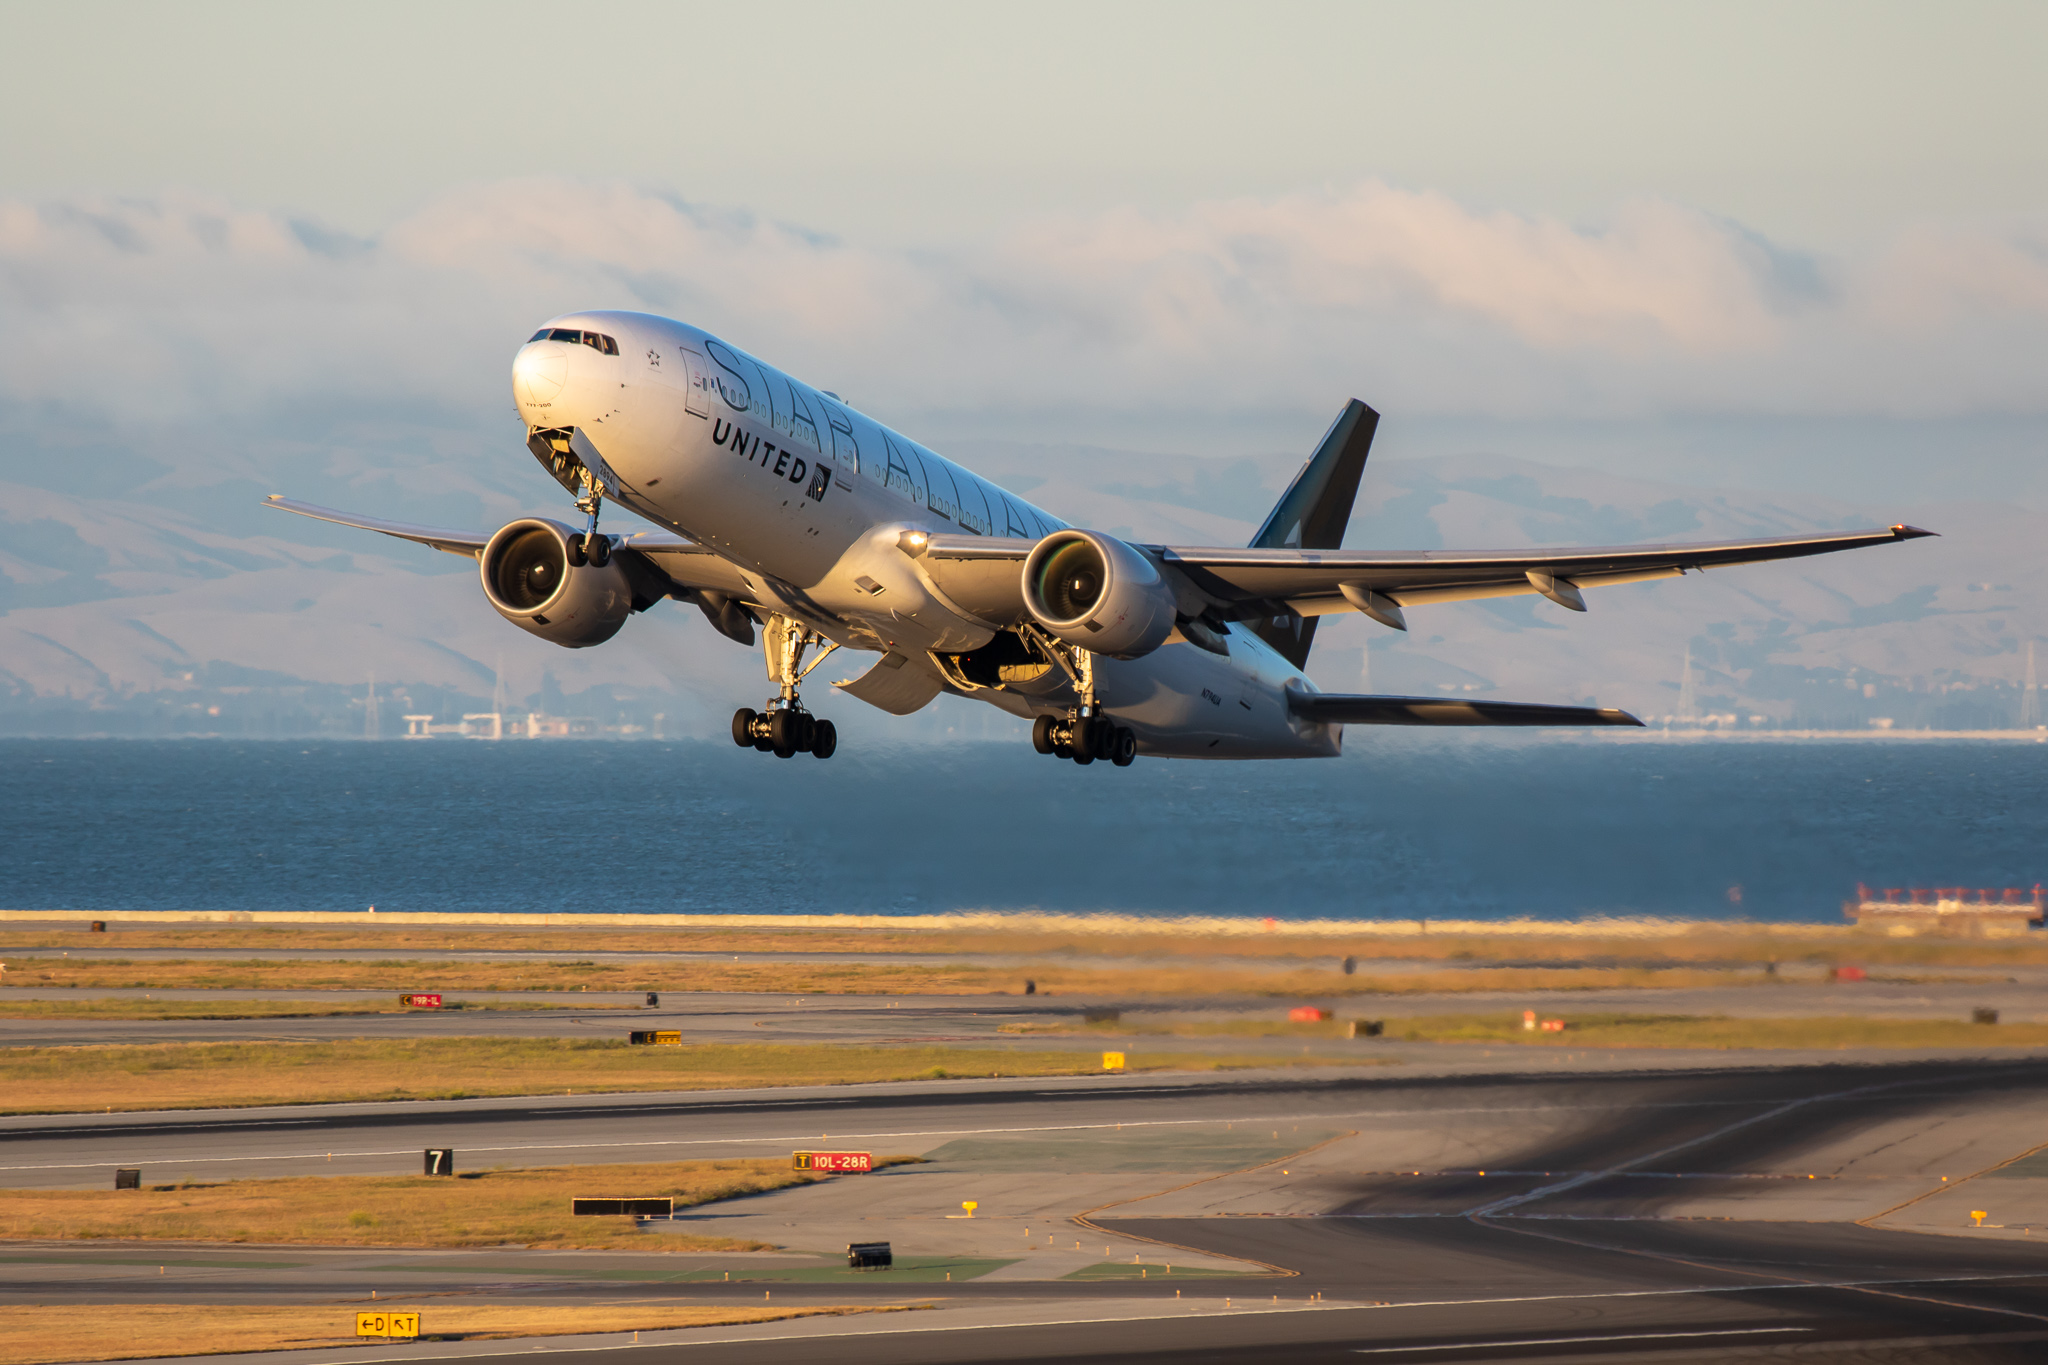 Photo of N794UA - United Airlines Boeing 777-200 at SFO